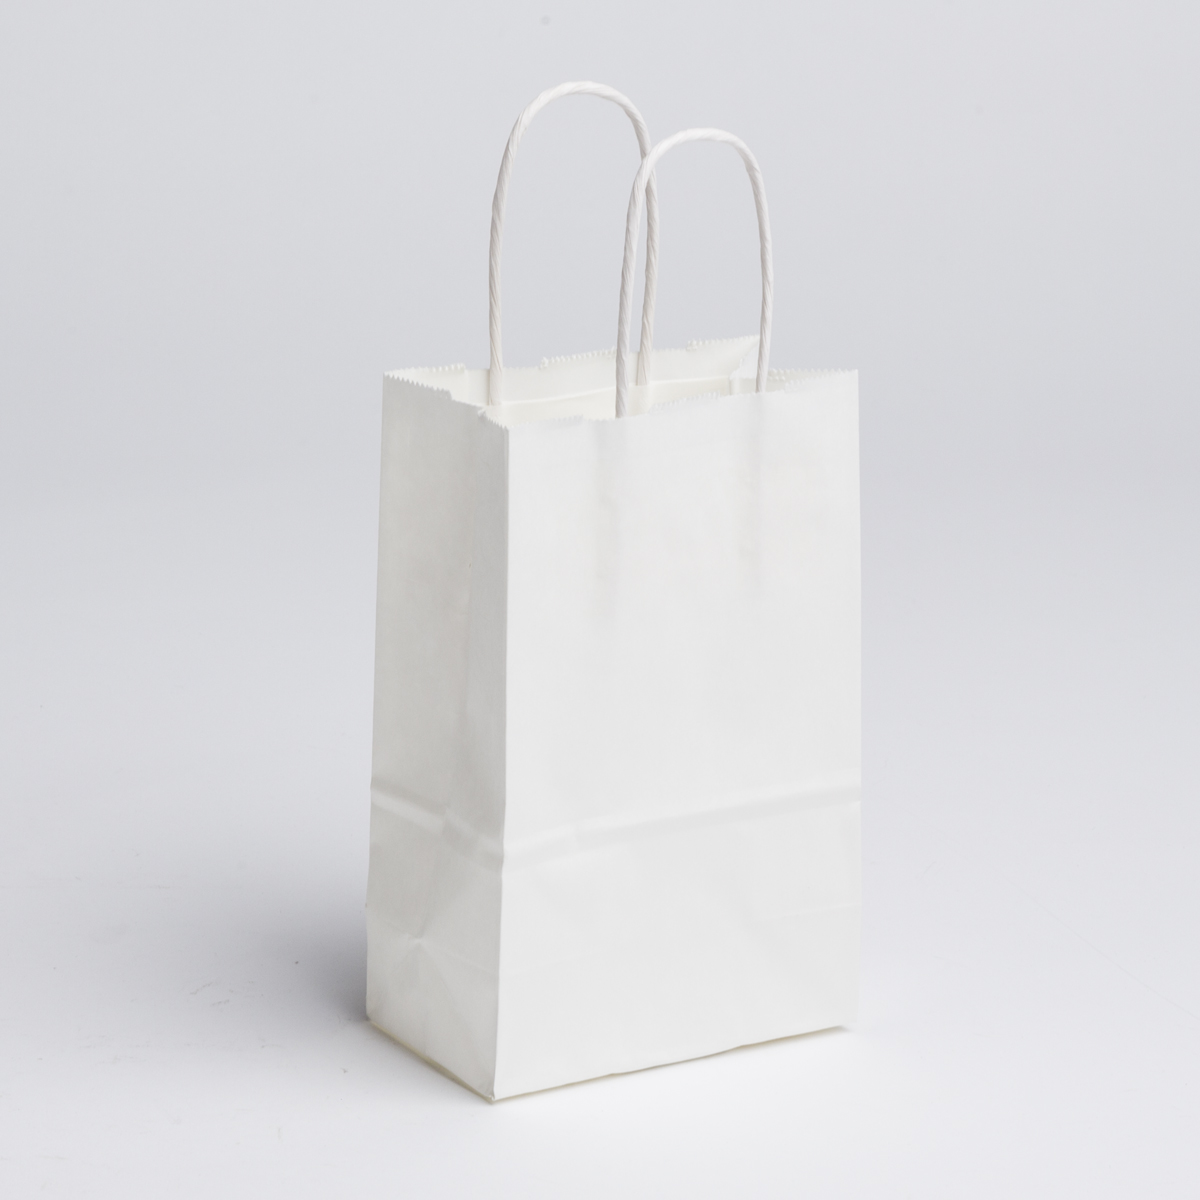 buying paper grocery bags Looking for wholesale grocery bags and reusable grocery bags in bulk holden bags offers eco-friendly reusable grocery bags for discount prices.